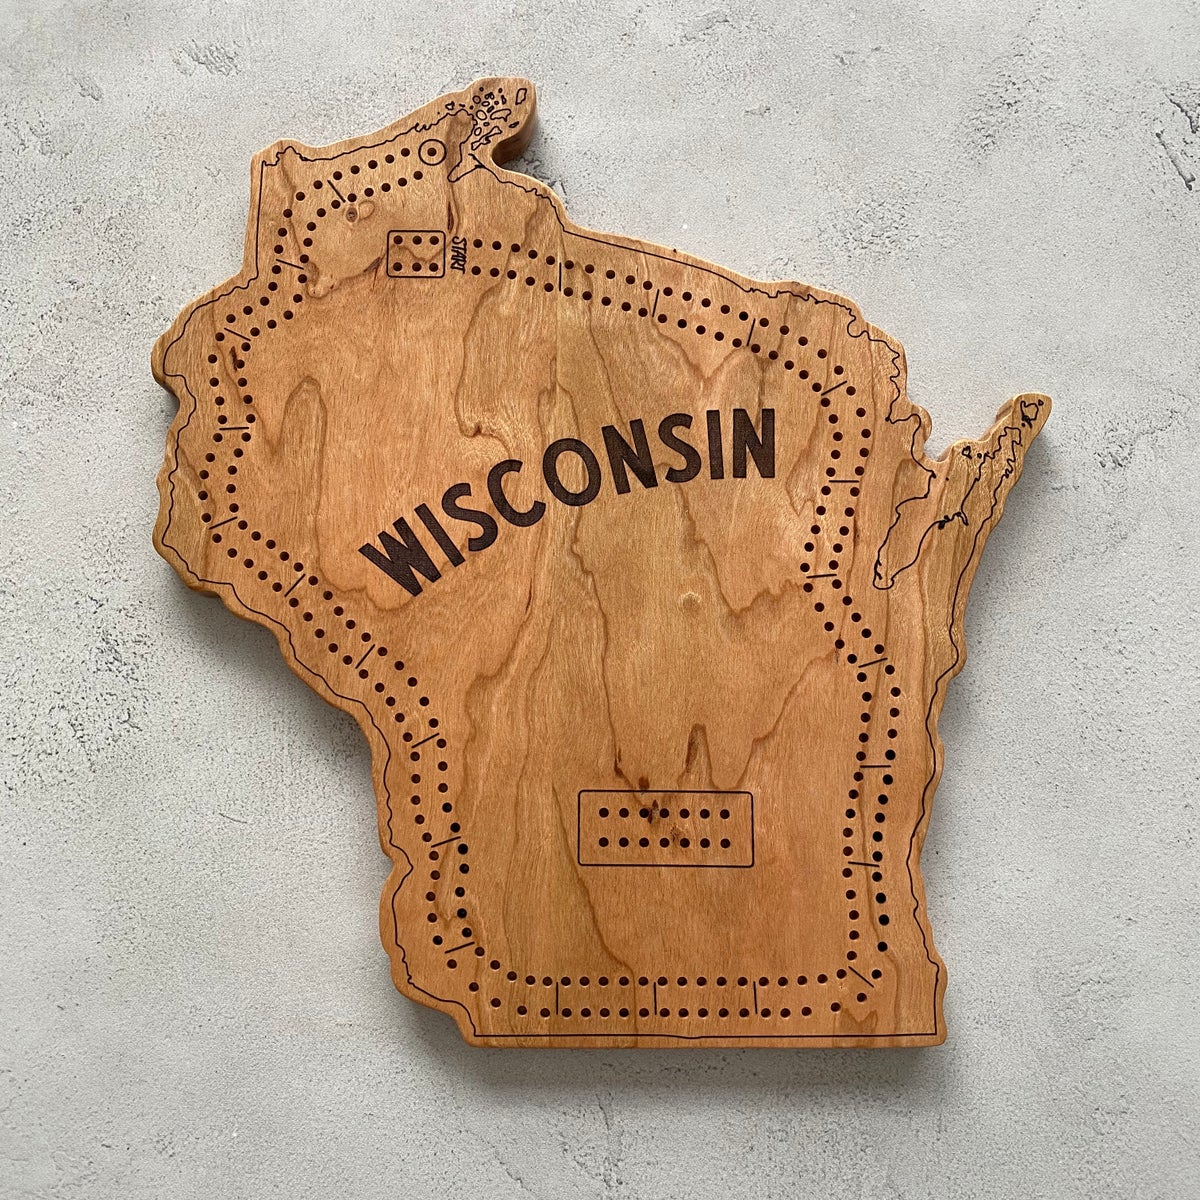 Wisconsin cribbage board #4